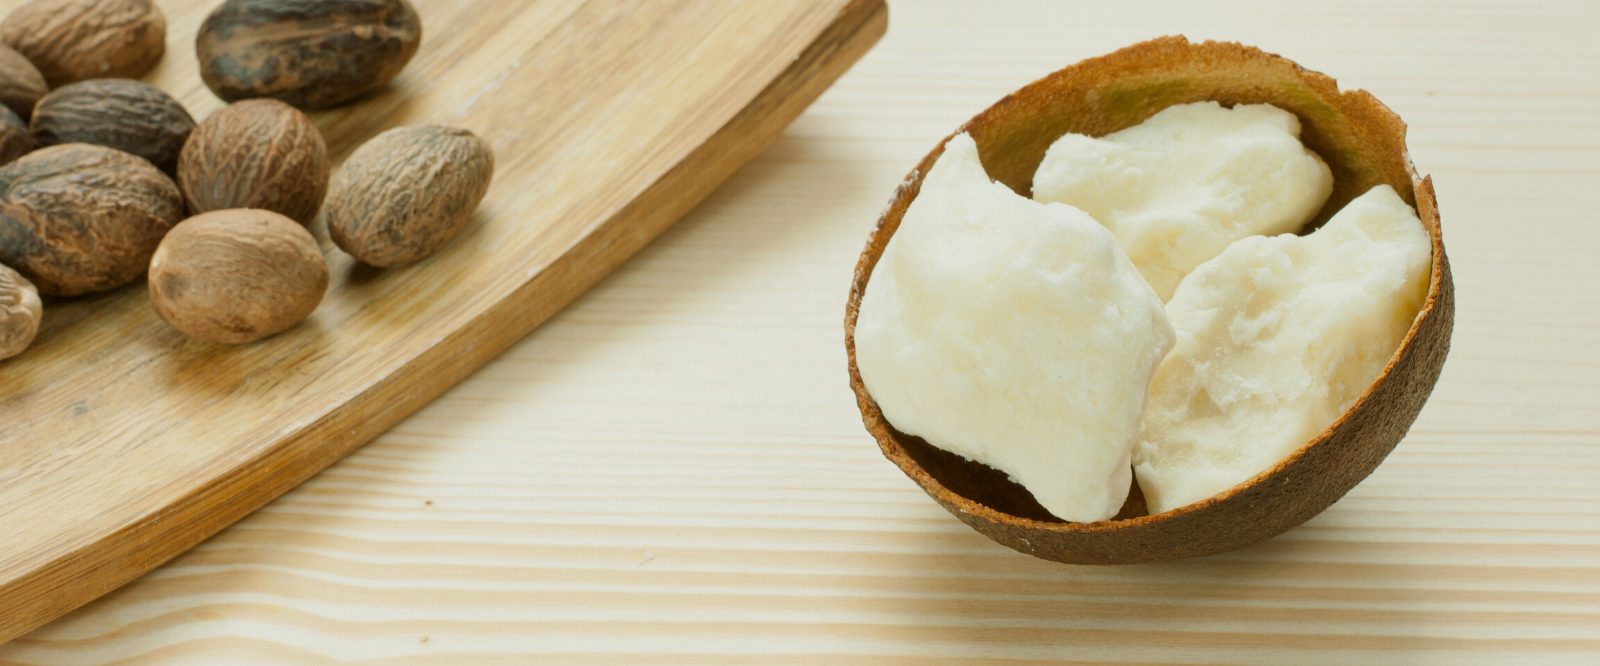 raw shea butter for organic skin moisturizer